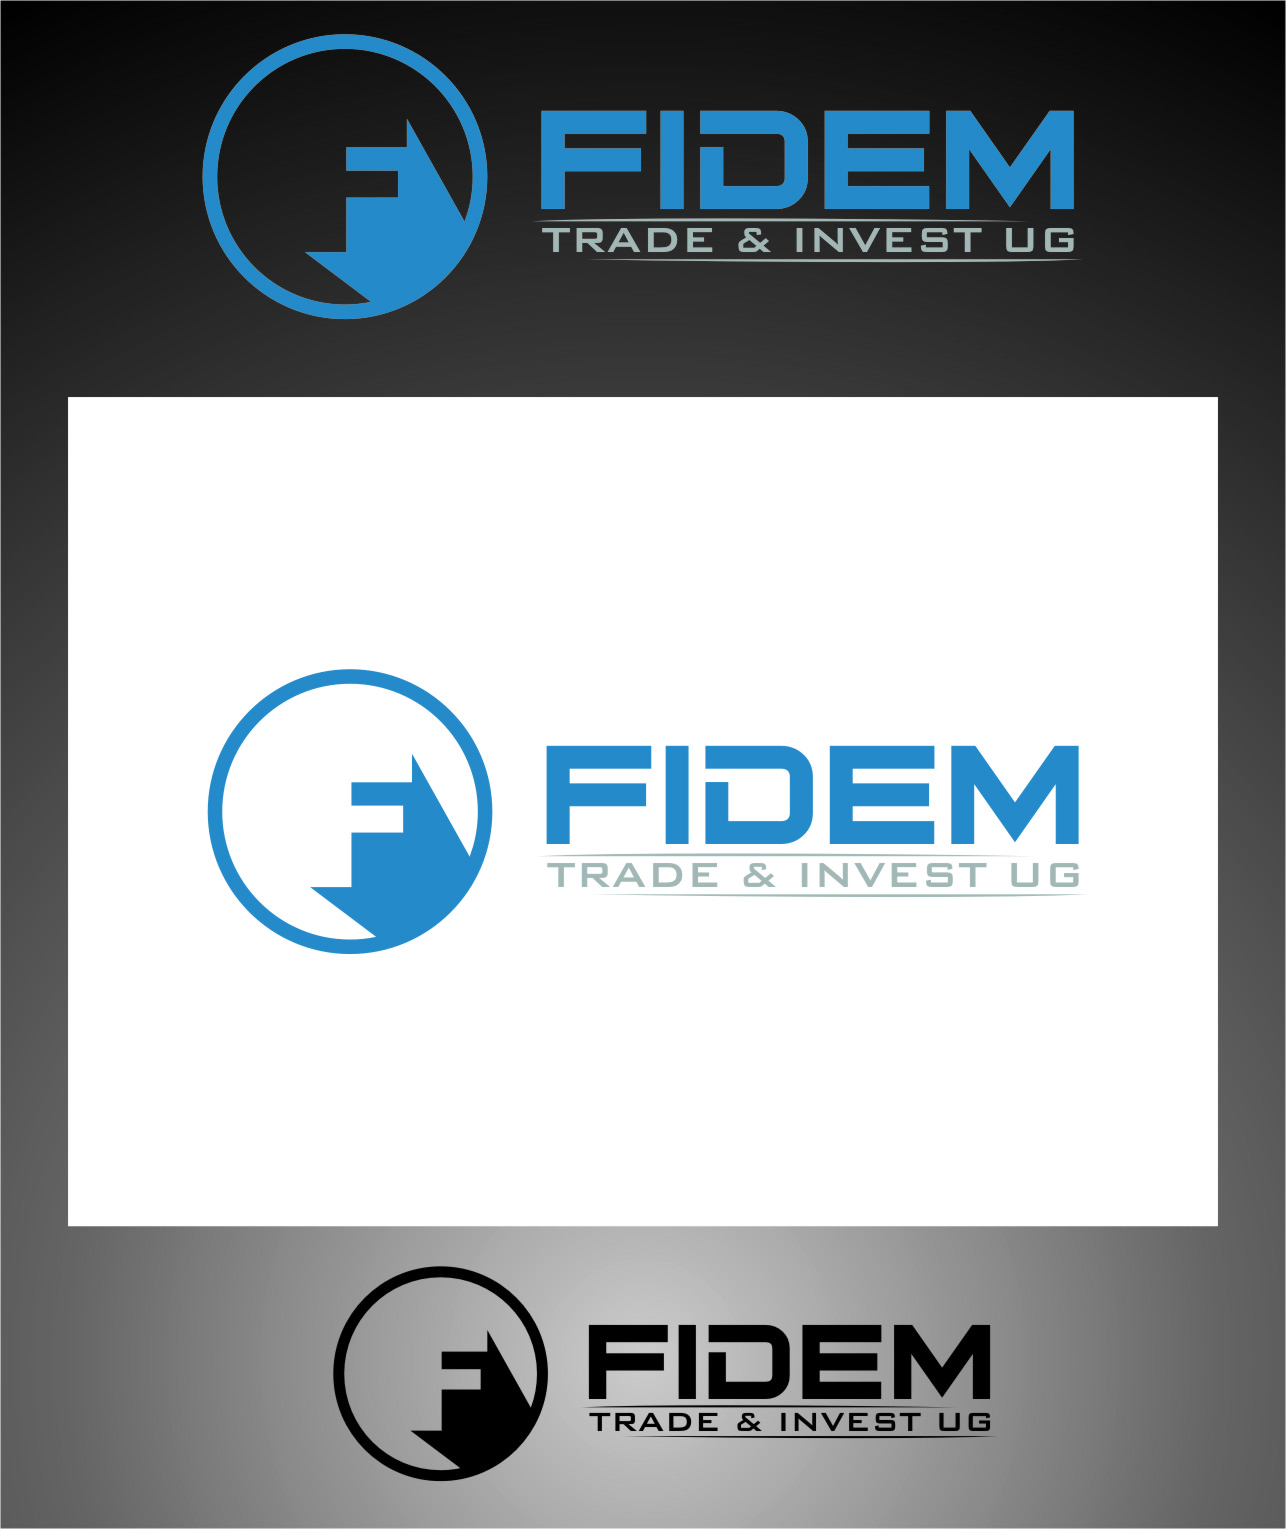 Logo Design by RasYa Muhammad Athaya - Entry No. 395 in the Logo Design Contest Professional Logo Design for FIDEM Trade & Invest UG.